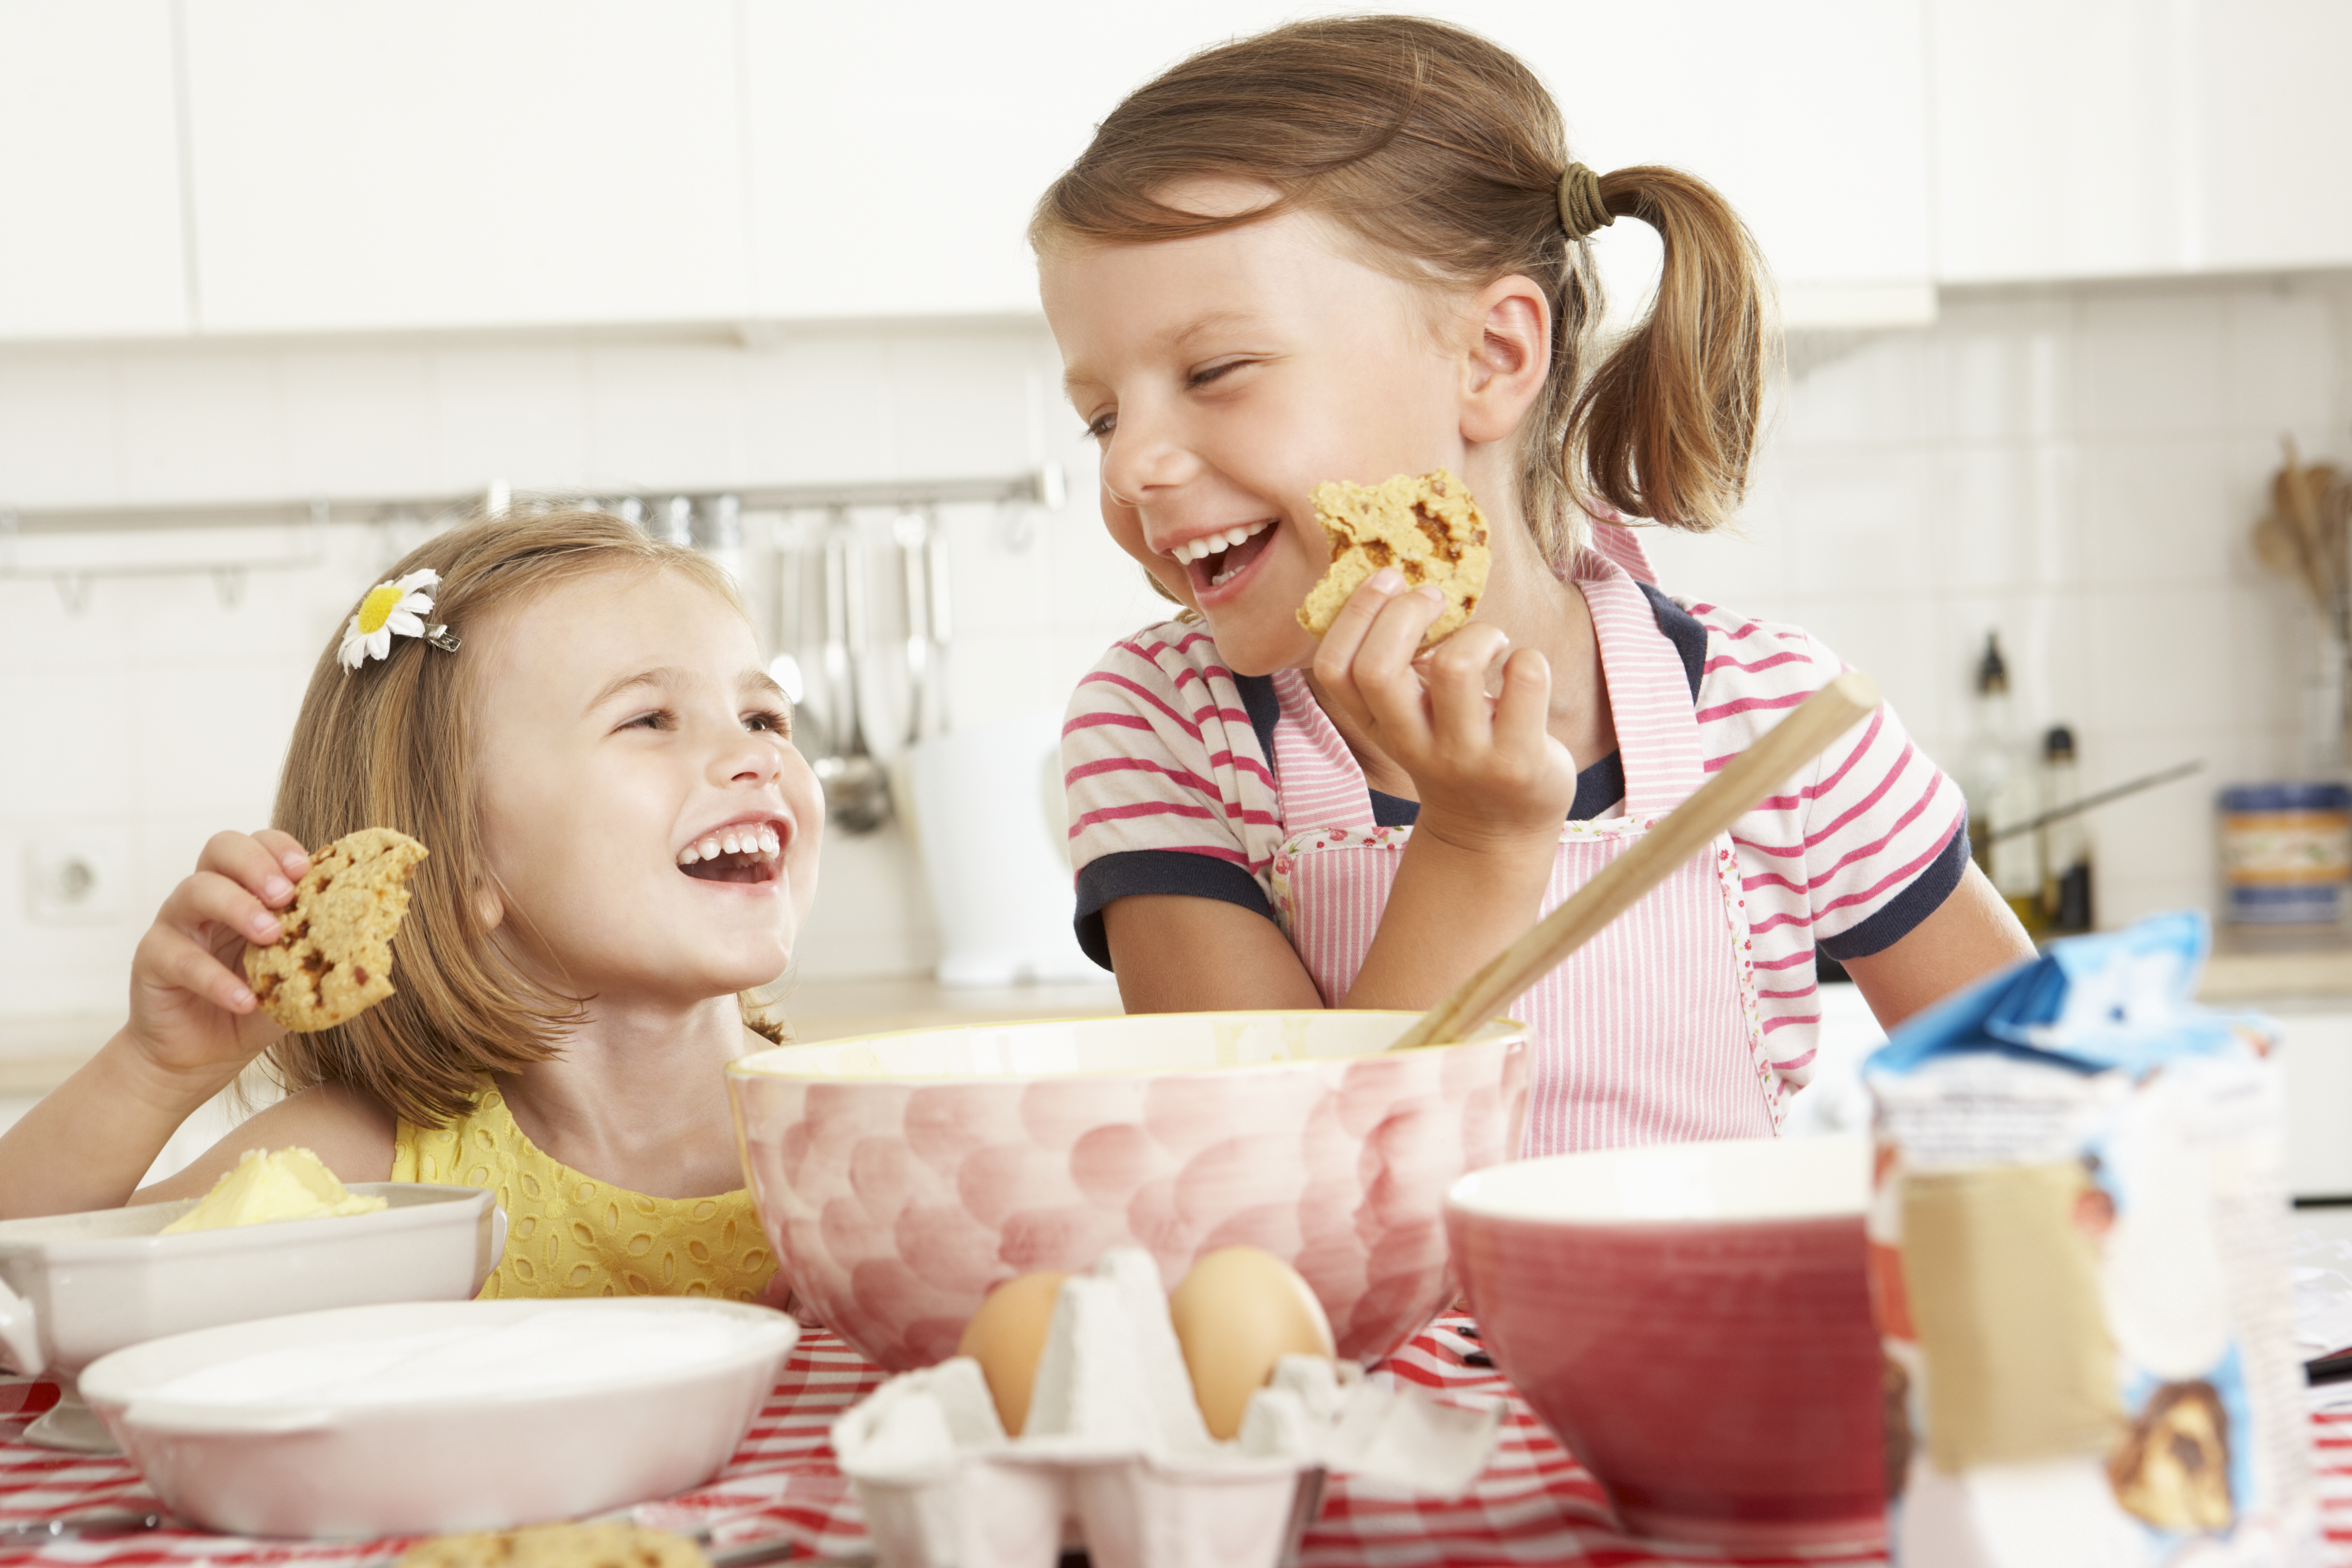 Two Girls Baking In Kitchen